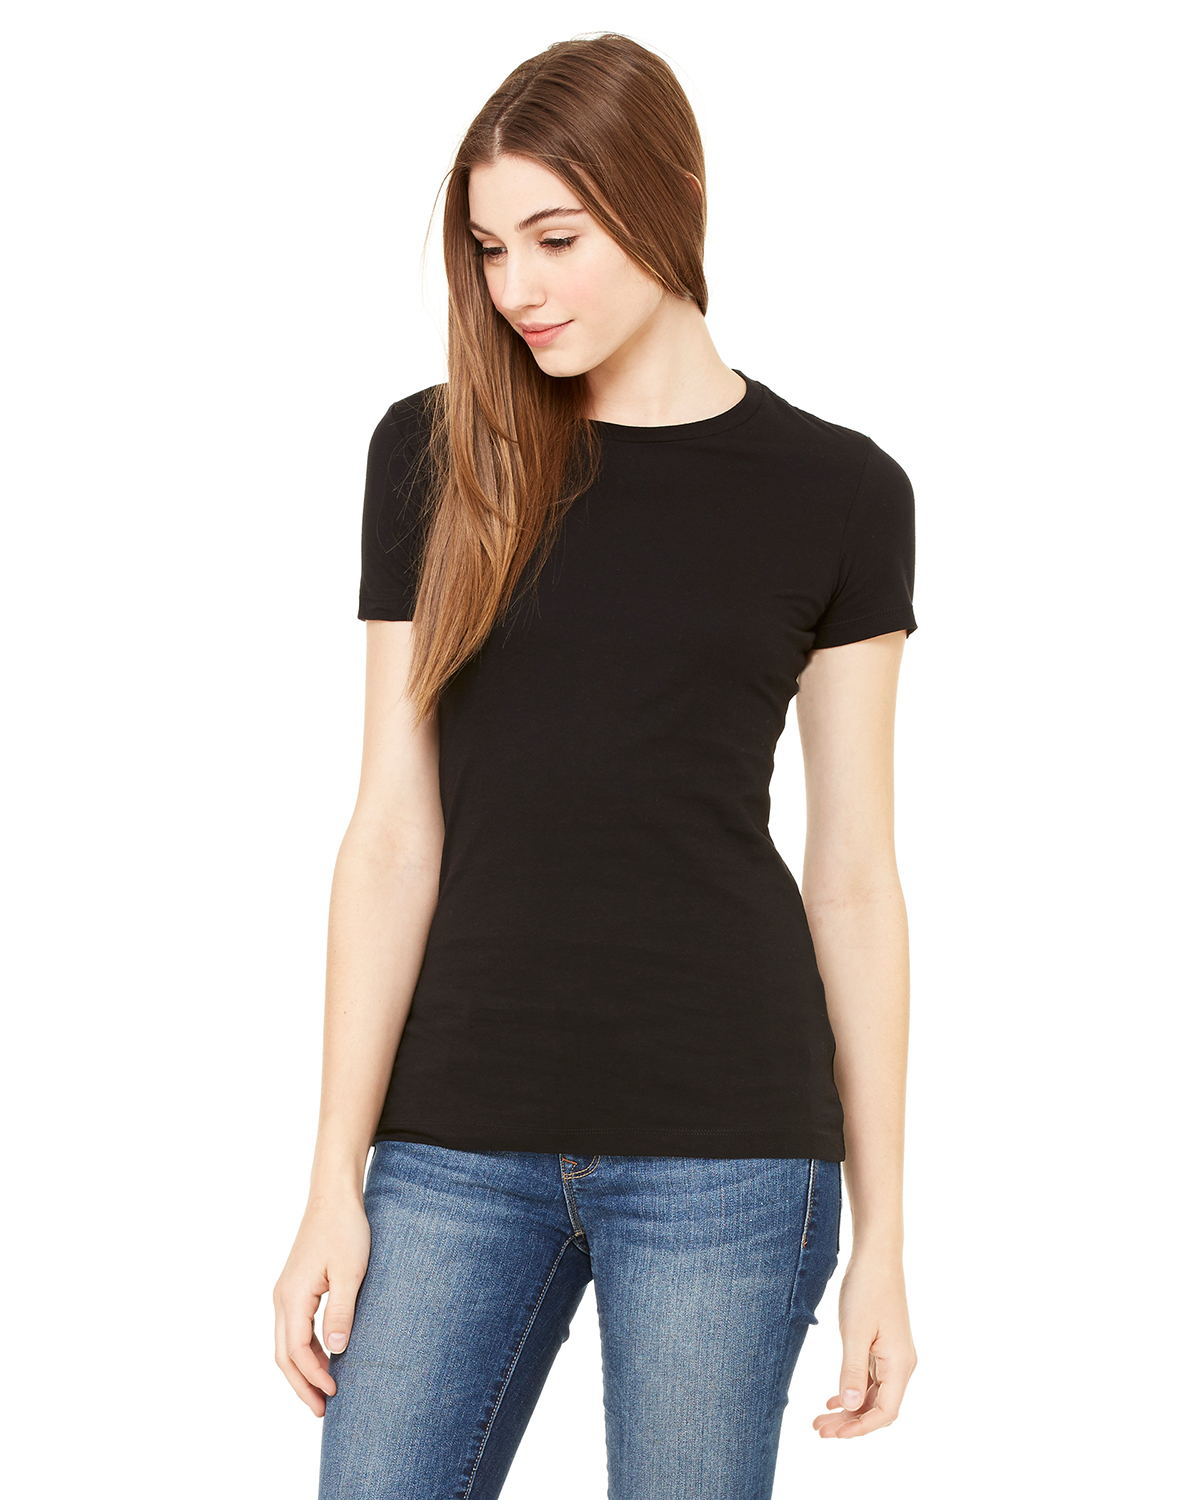 Bella + Canvas 6004 - Ladies 4.2 oz. Favorite Tee